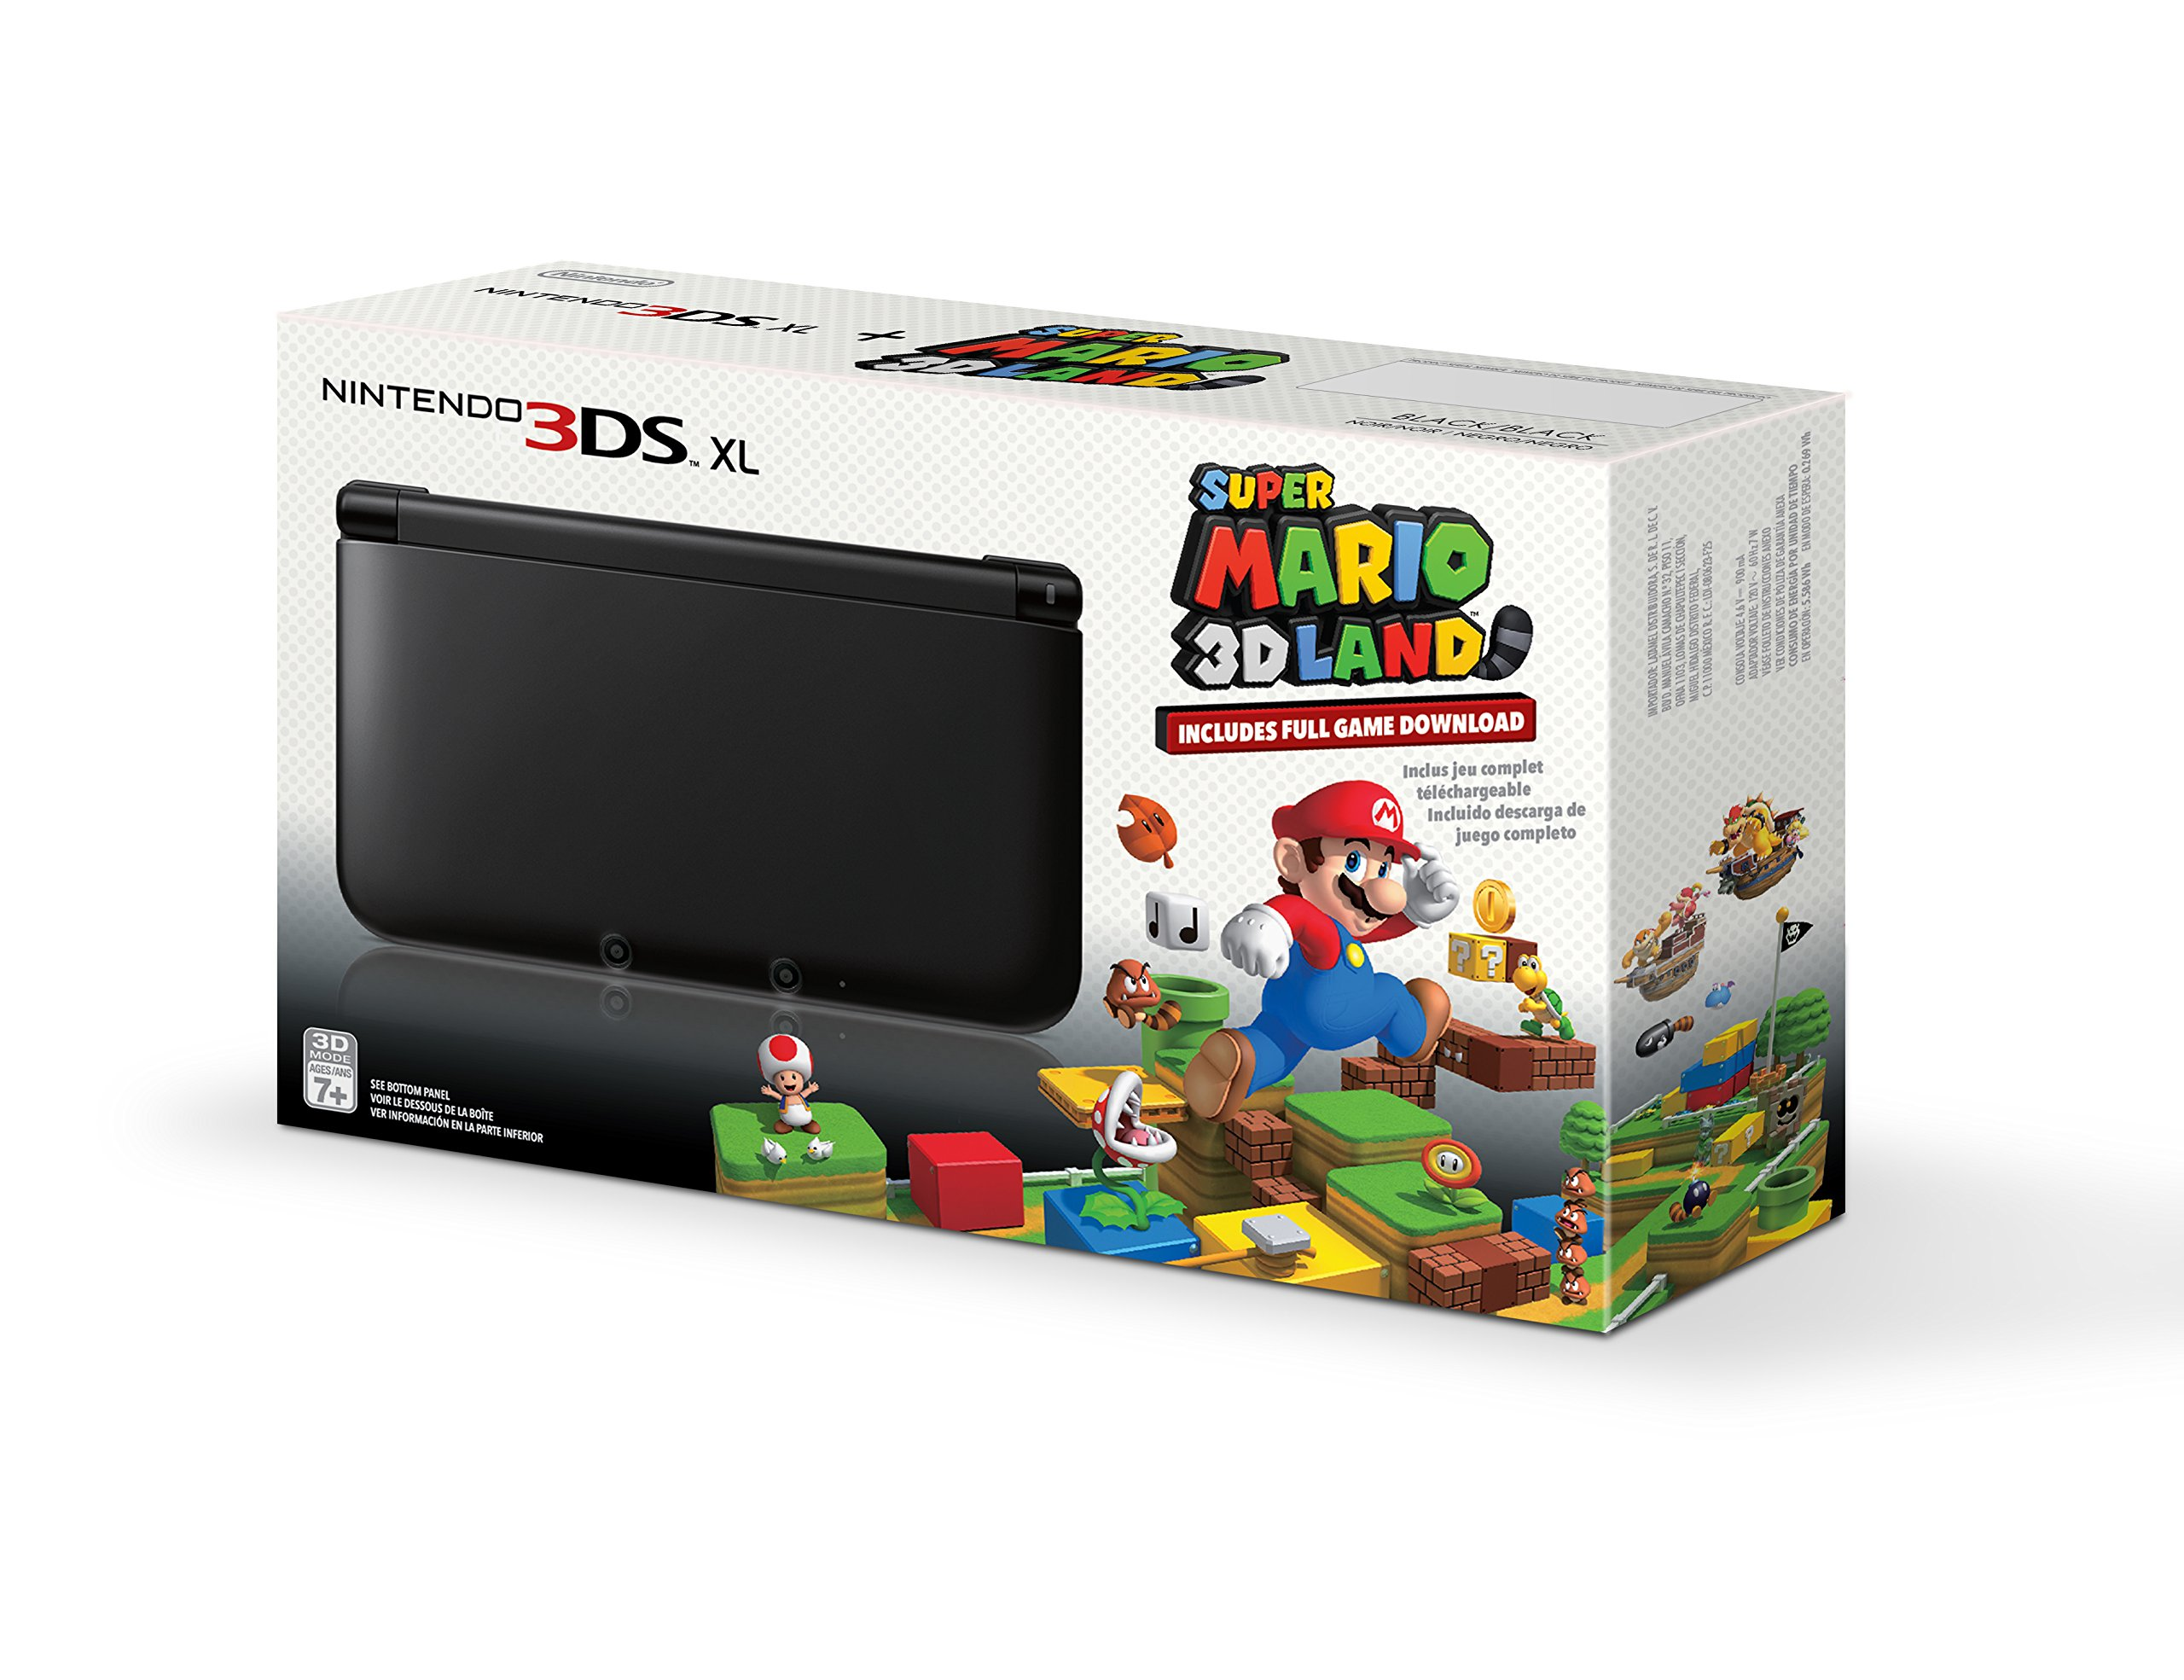 Black Nintendo 3ds Xl With Pre Installed Super Mario 3d Land Game